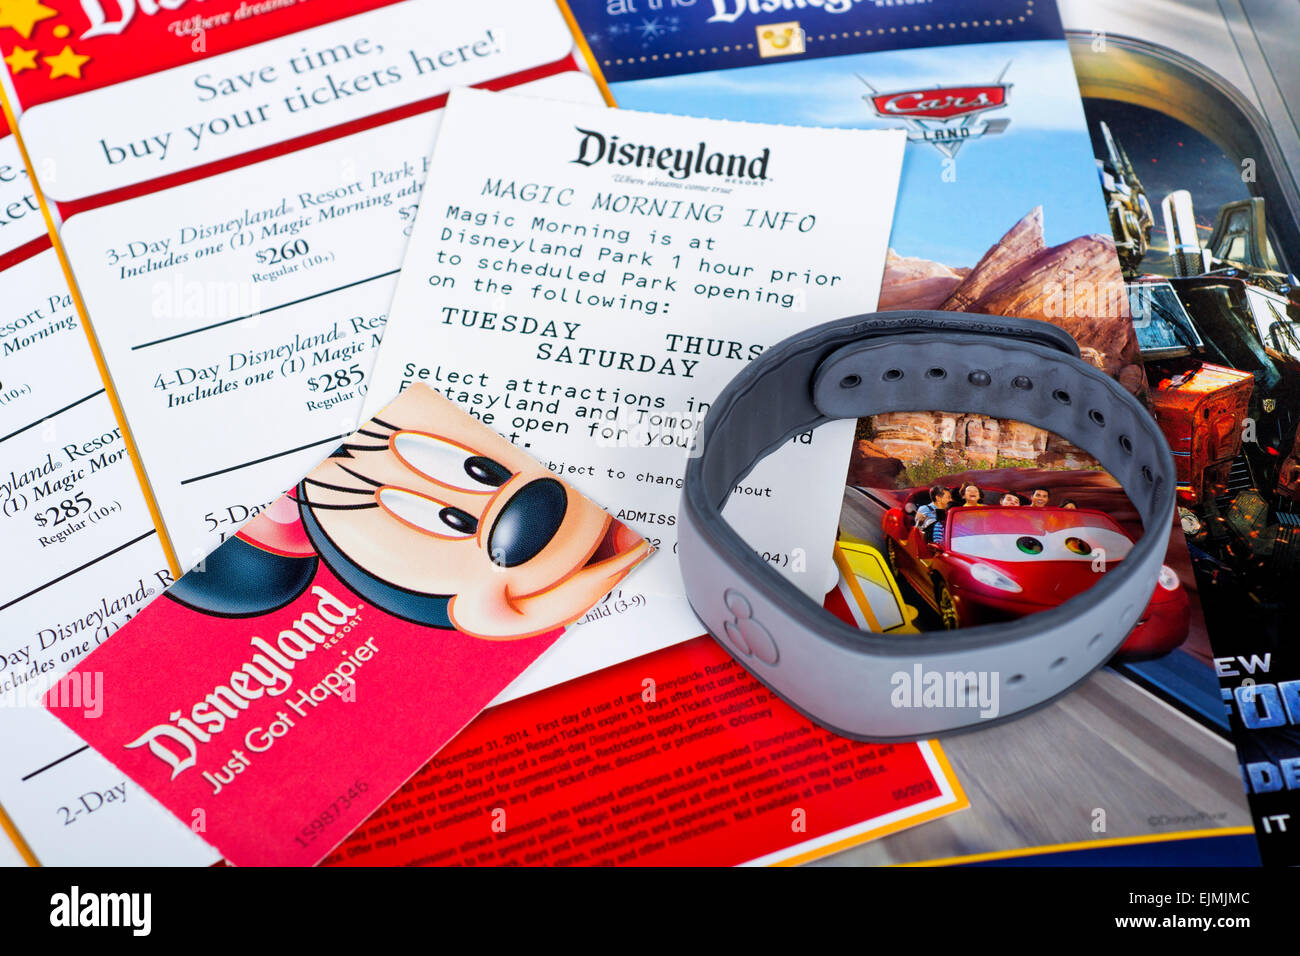 Tickets Disney World, Disneyland Wristband, Magic Morning, 3-Day Park Hopper Ticket - Stock Image